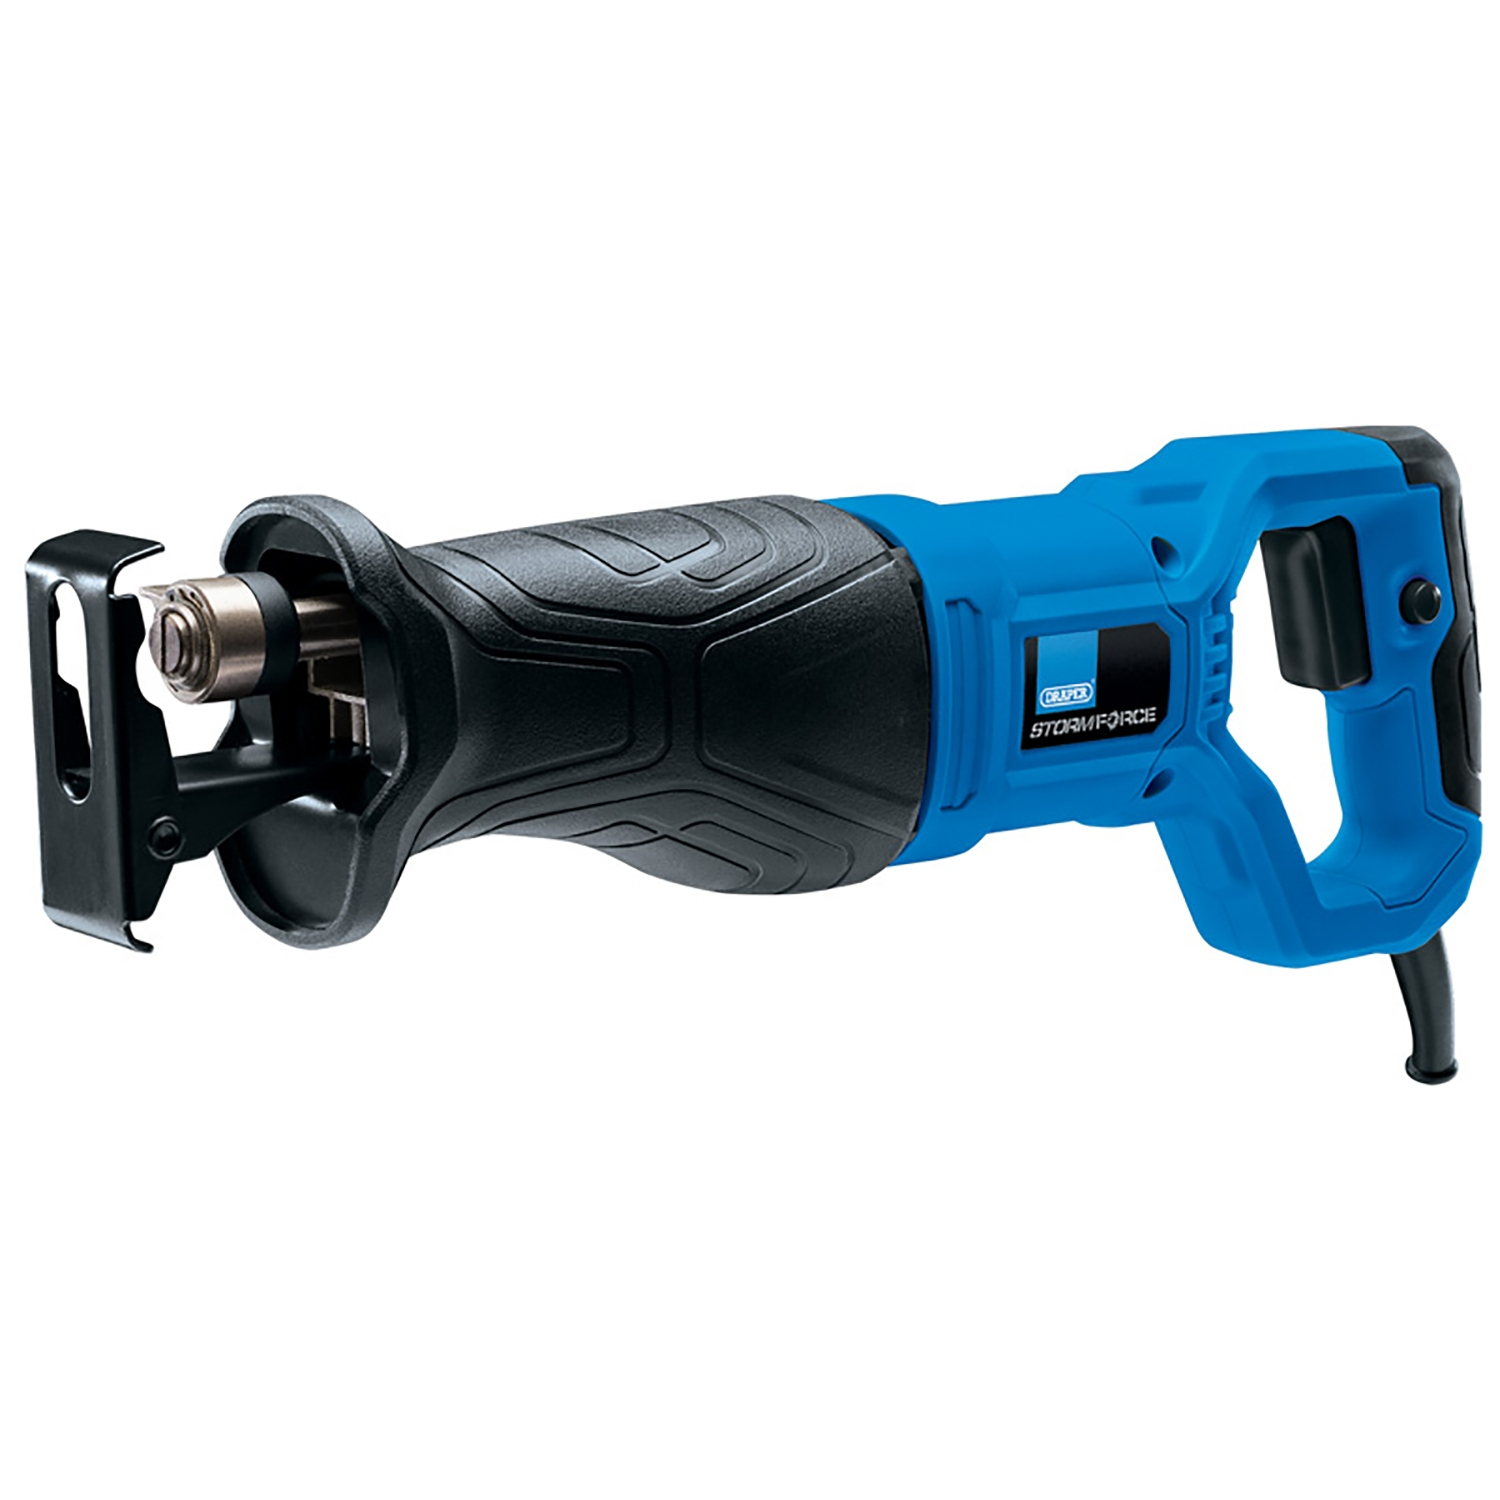 Image of Draper Storm Force Reciprocating Saw 710w